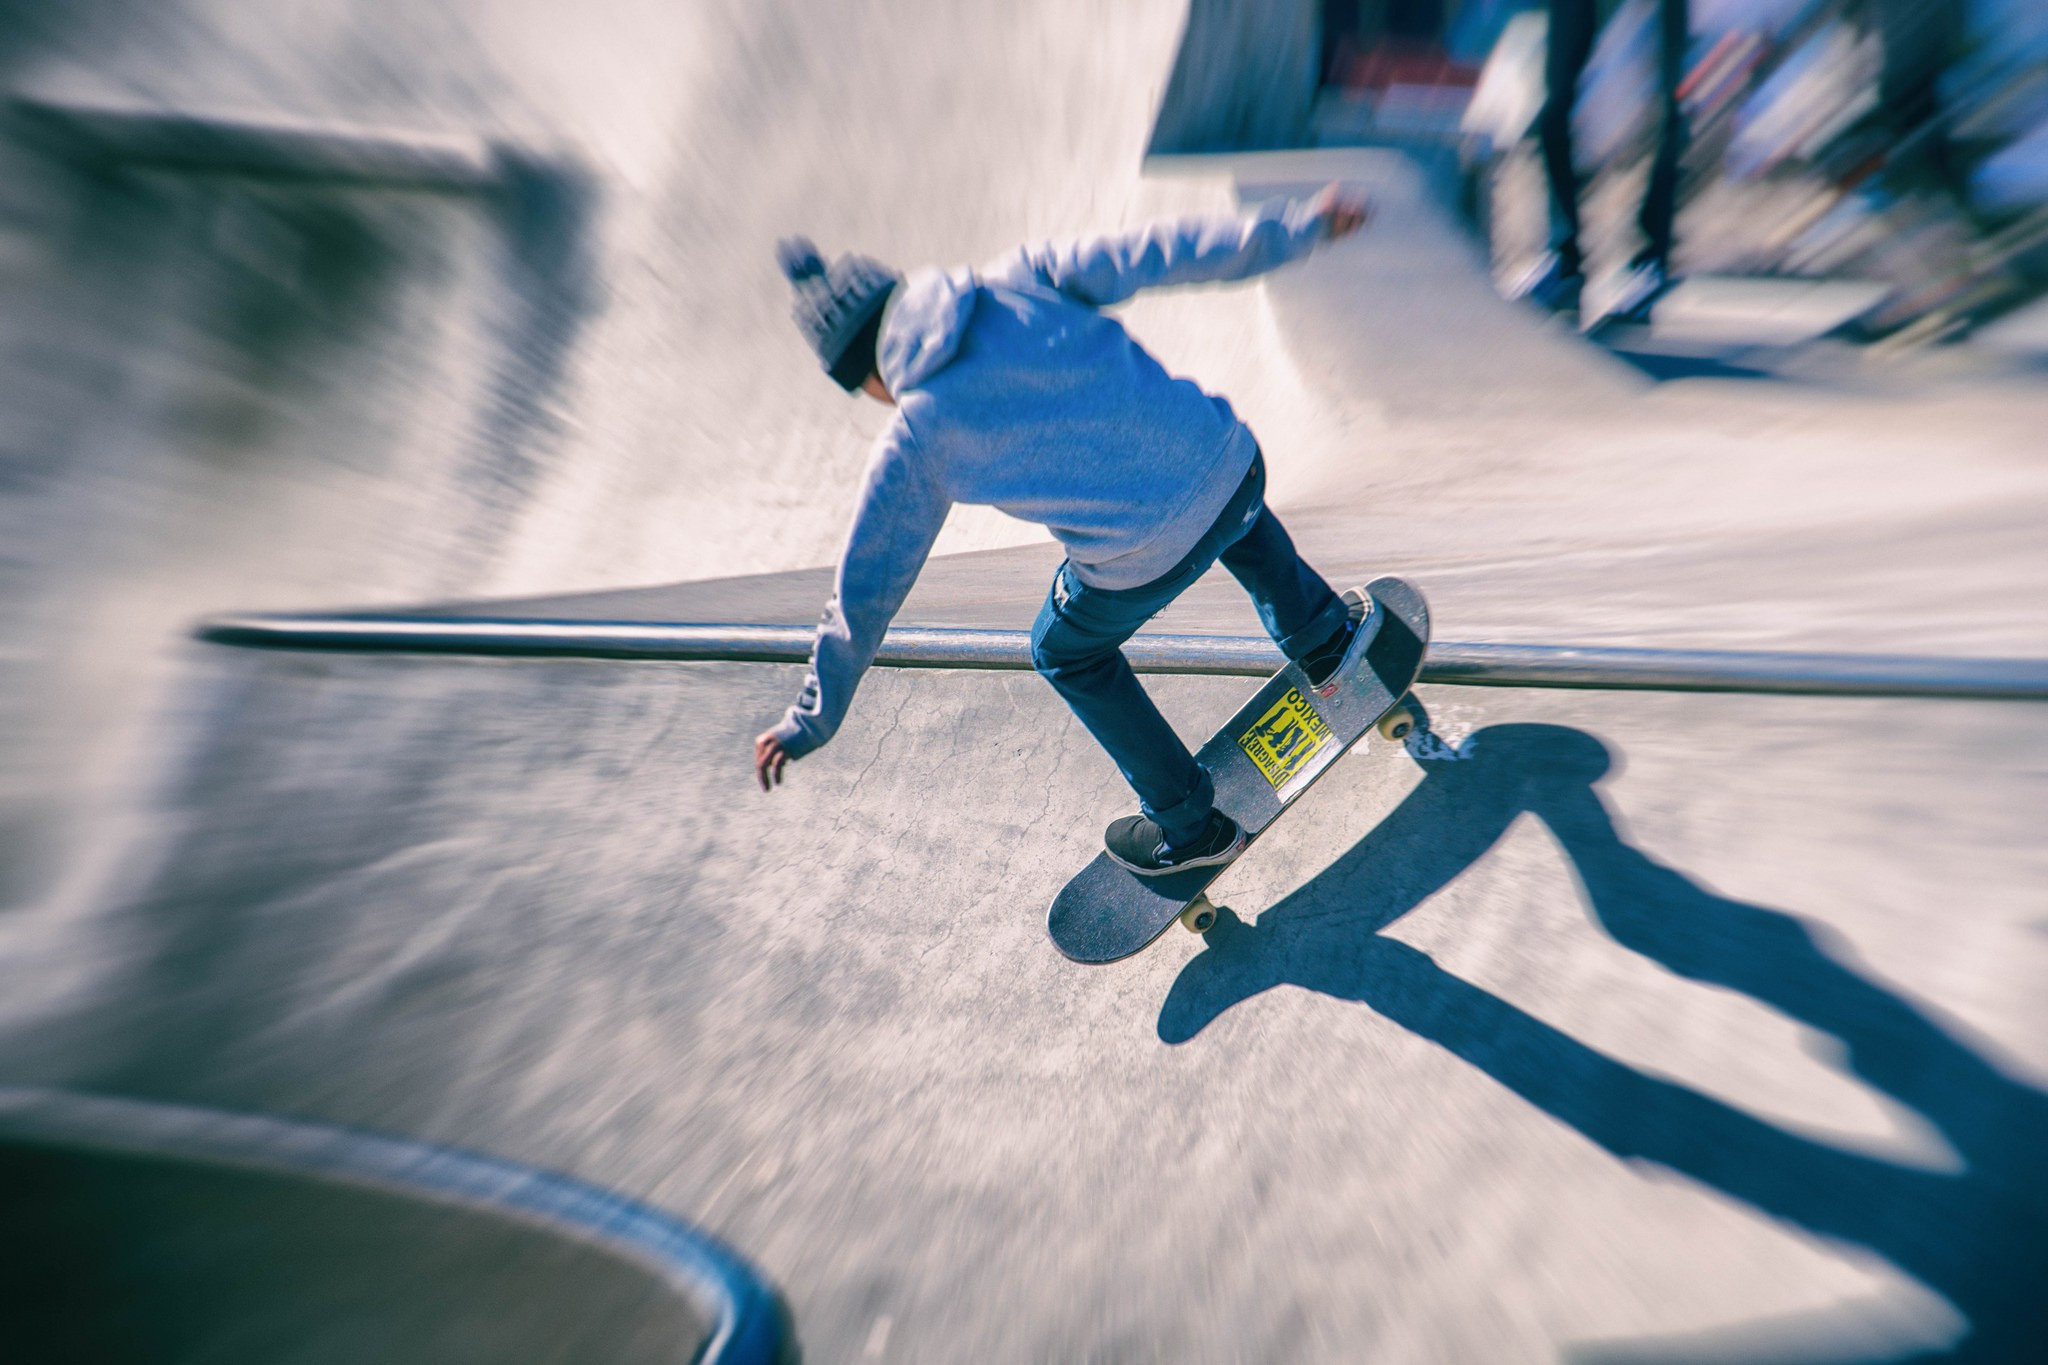 Malmö is a serious skateboarding city | ©Maria Eklind / Flickr